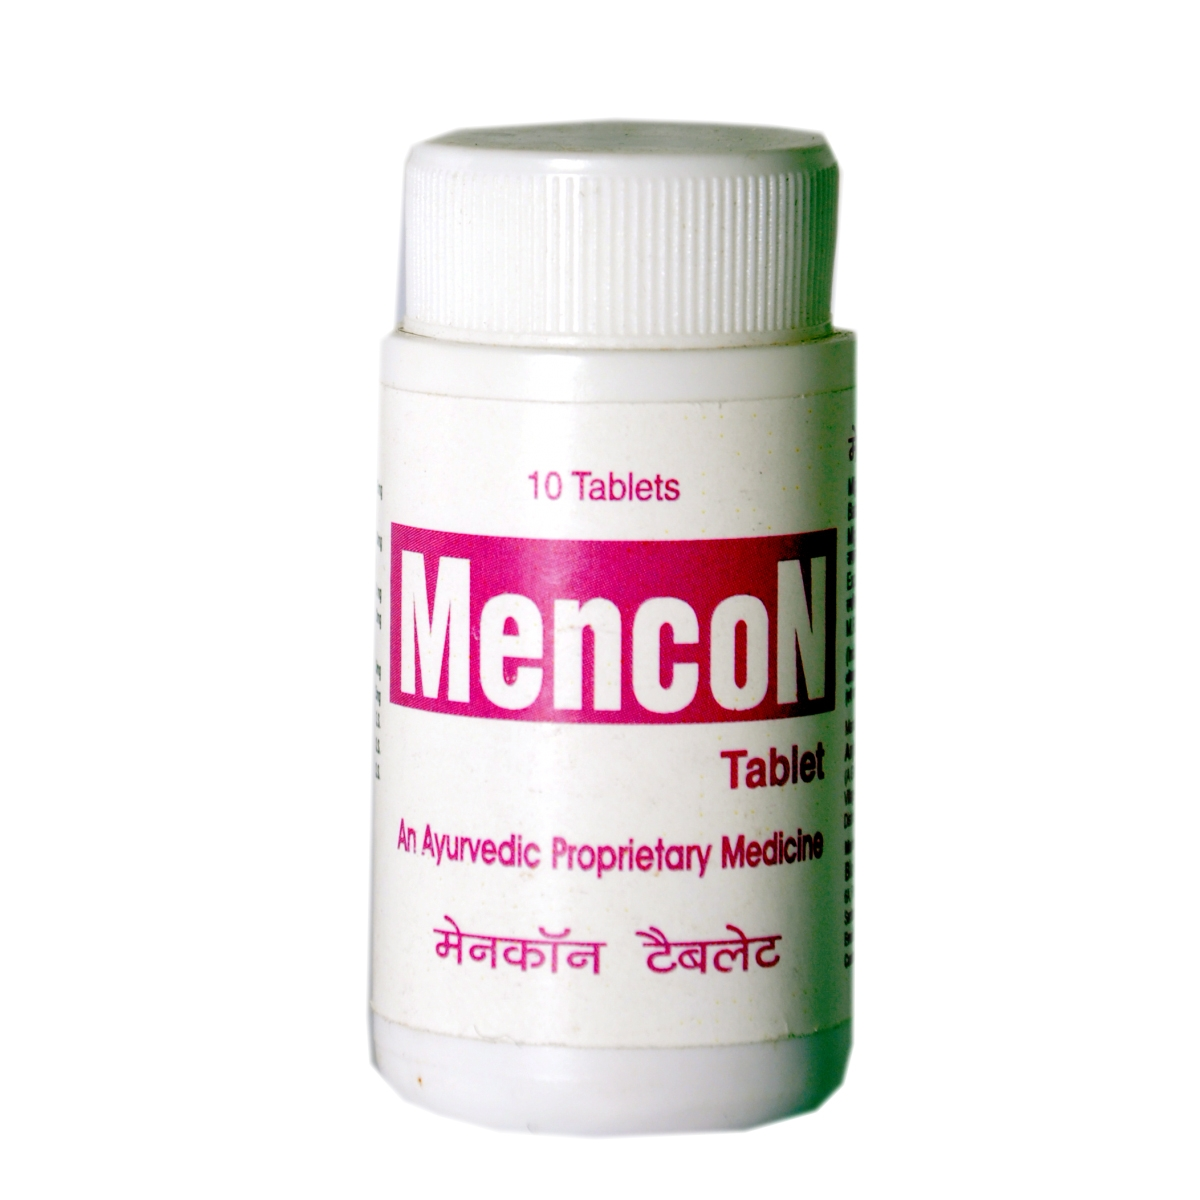 Mencon Tablet In Janjgir Champa